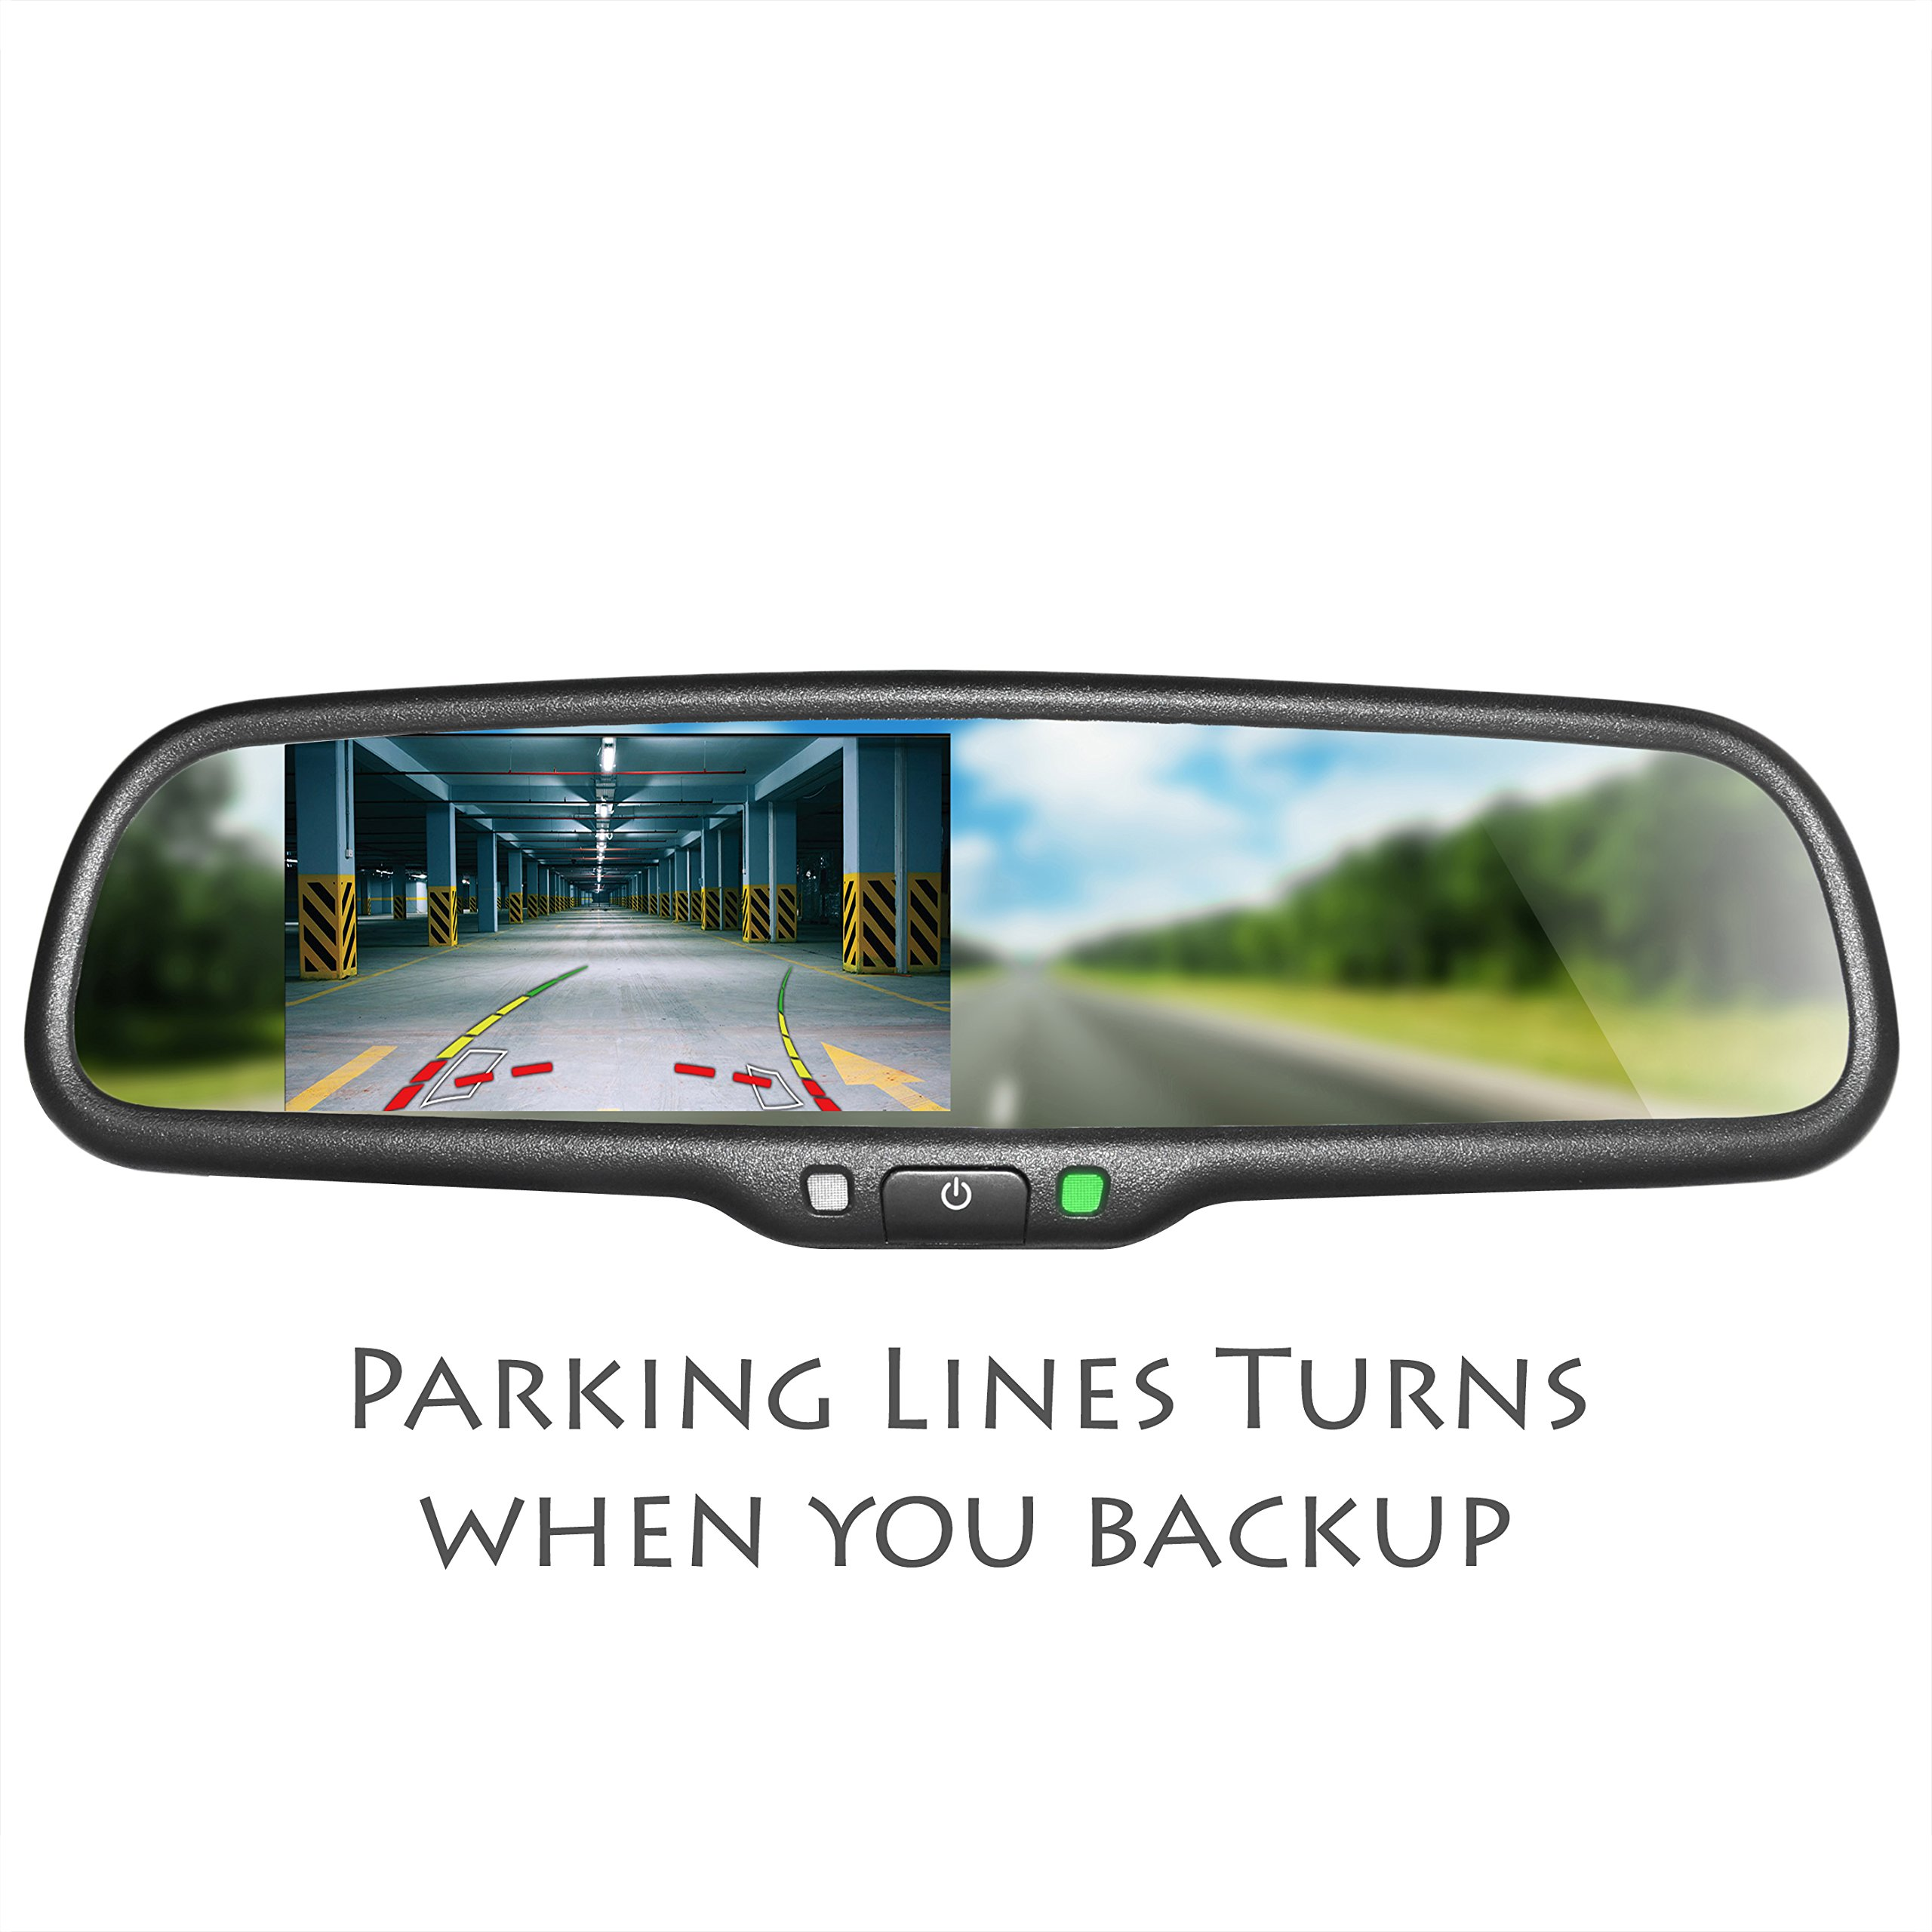 Master Tailgaters OEM Rear View Mirror with 4.3'' Auto Adjusting Ultra Bright LCD with DYNAMIC Parking Lines - Universal Fit by Master Tailgaters